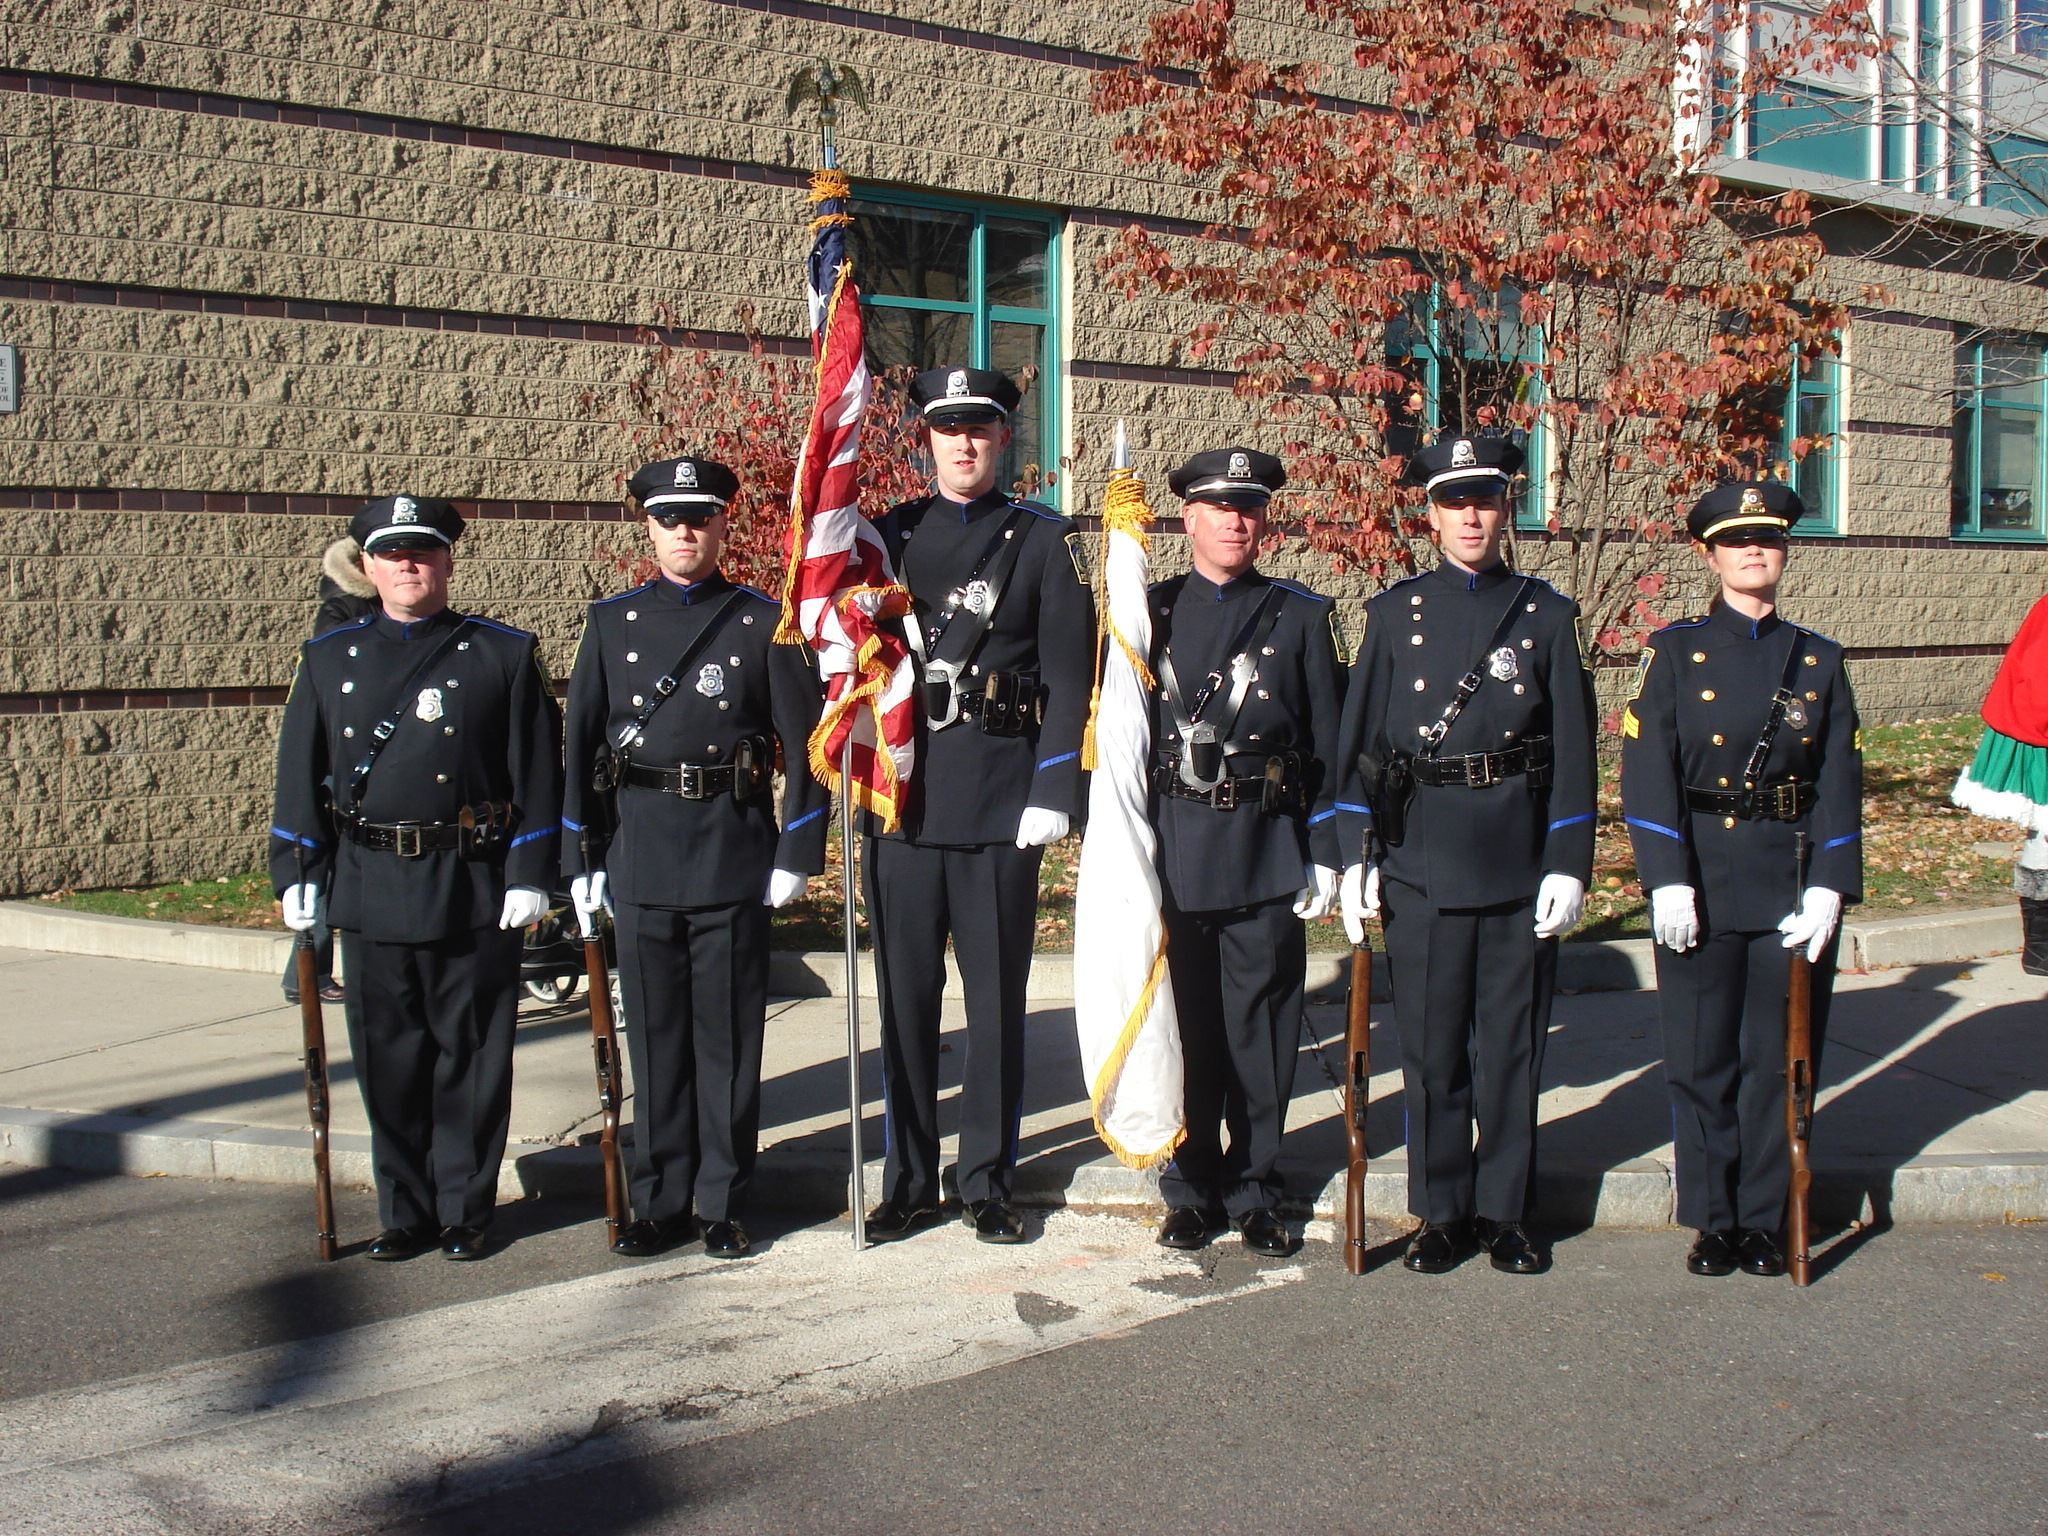 Malden Police Honor Guard